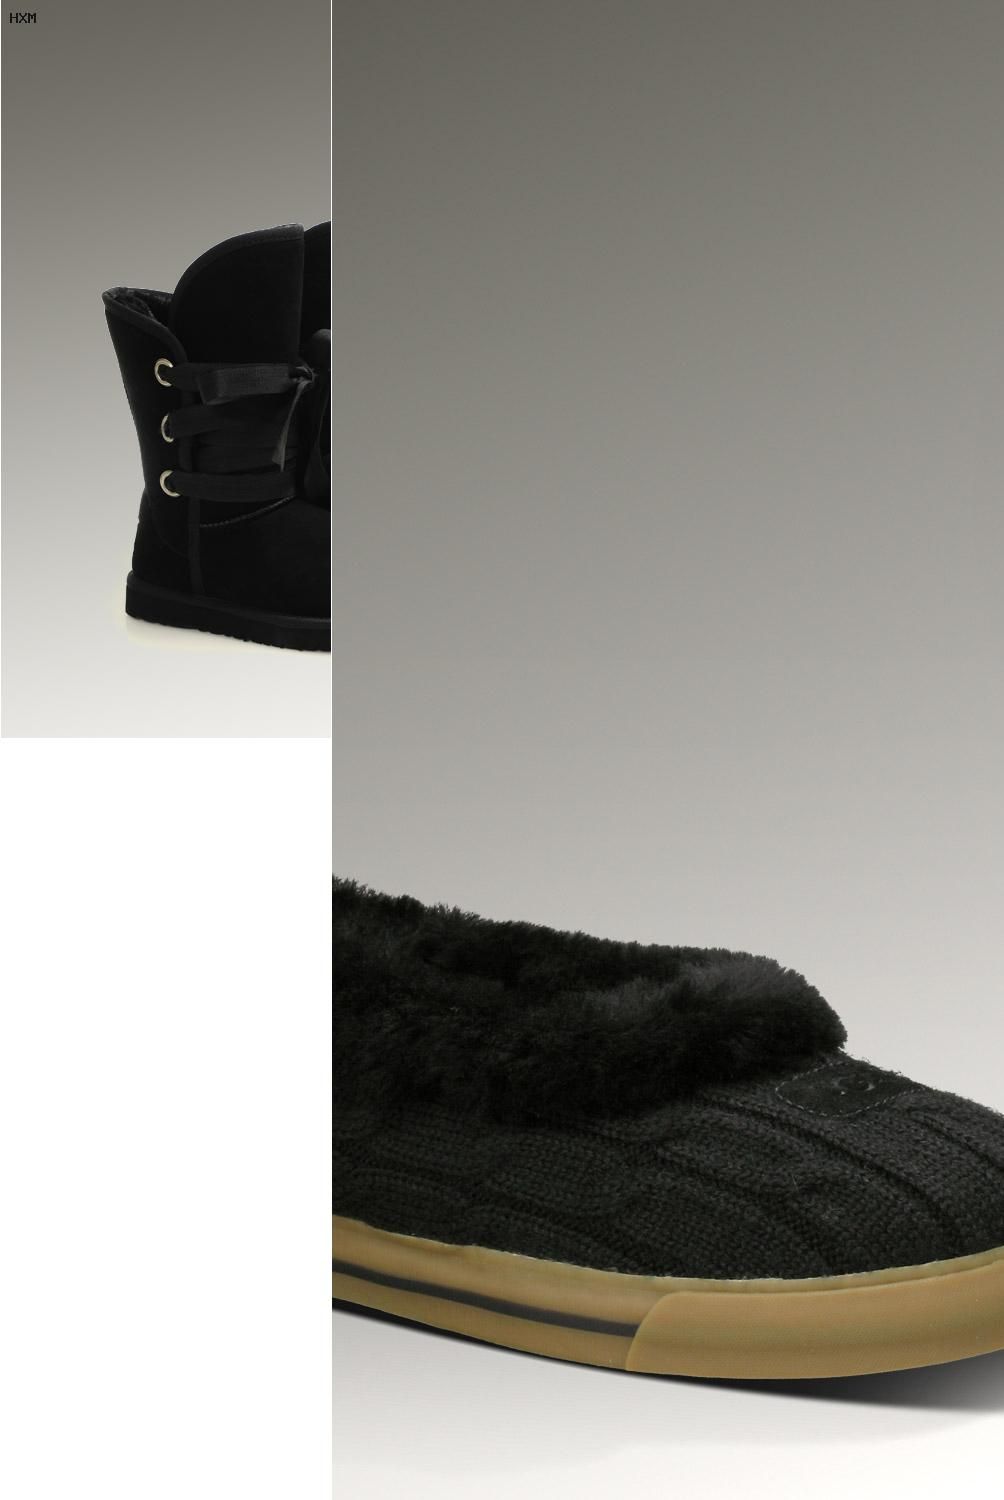 ugg outlet rotterdam adres